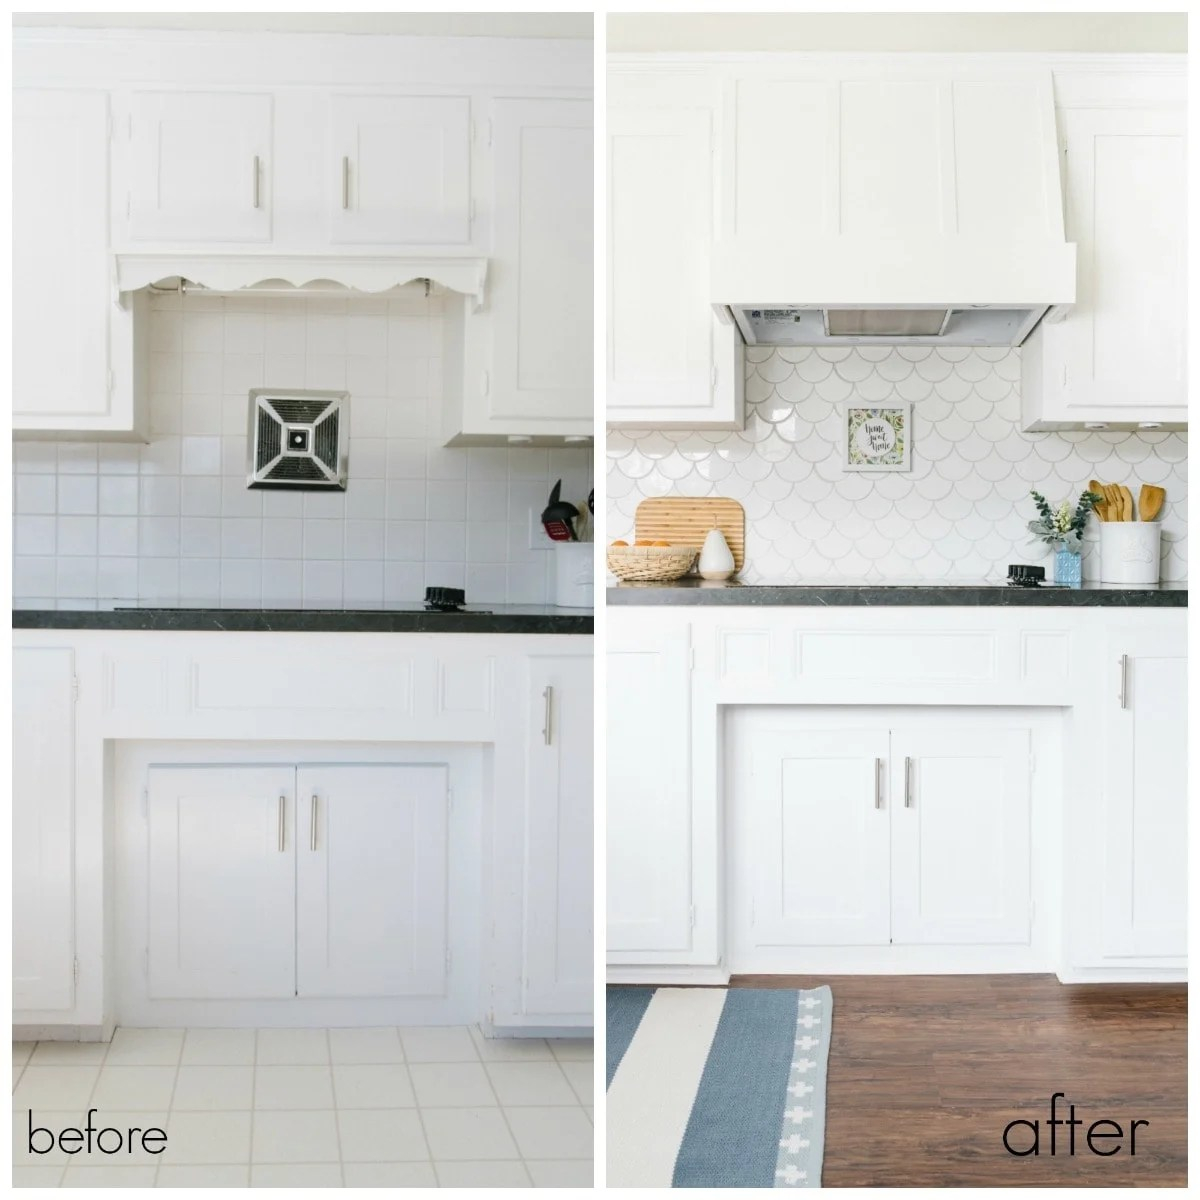 range hood side by side before and after